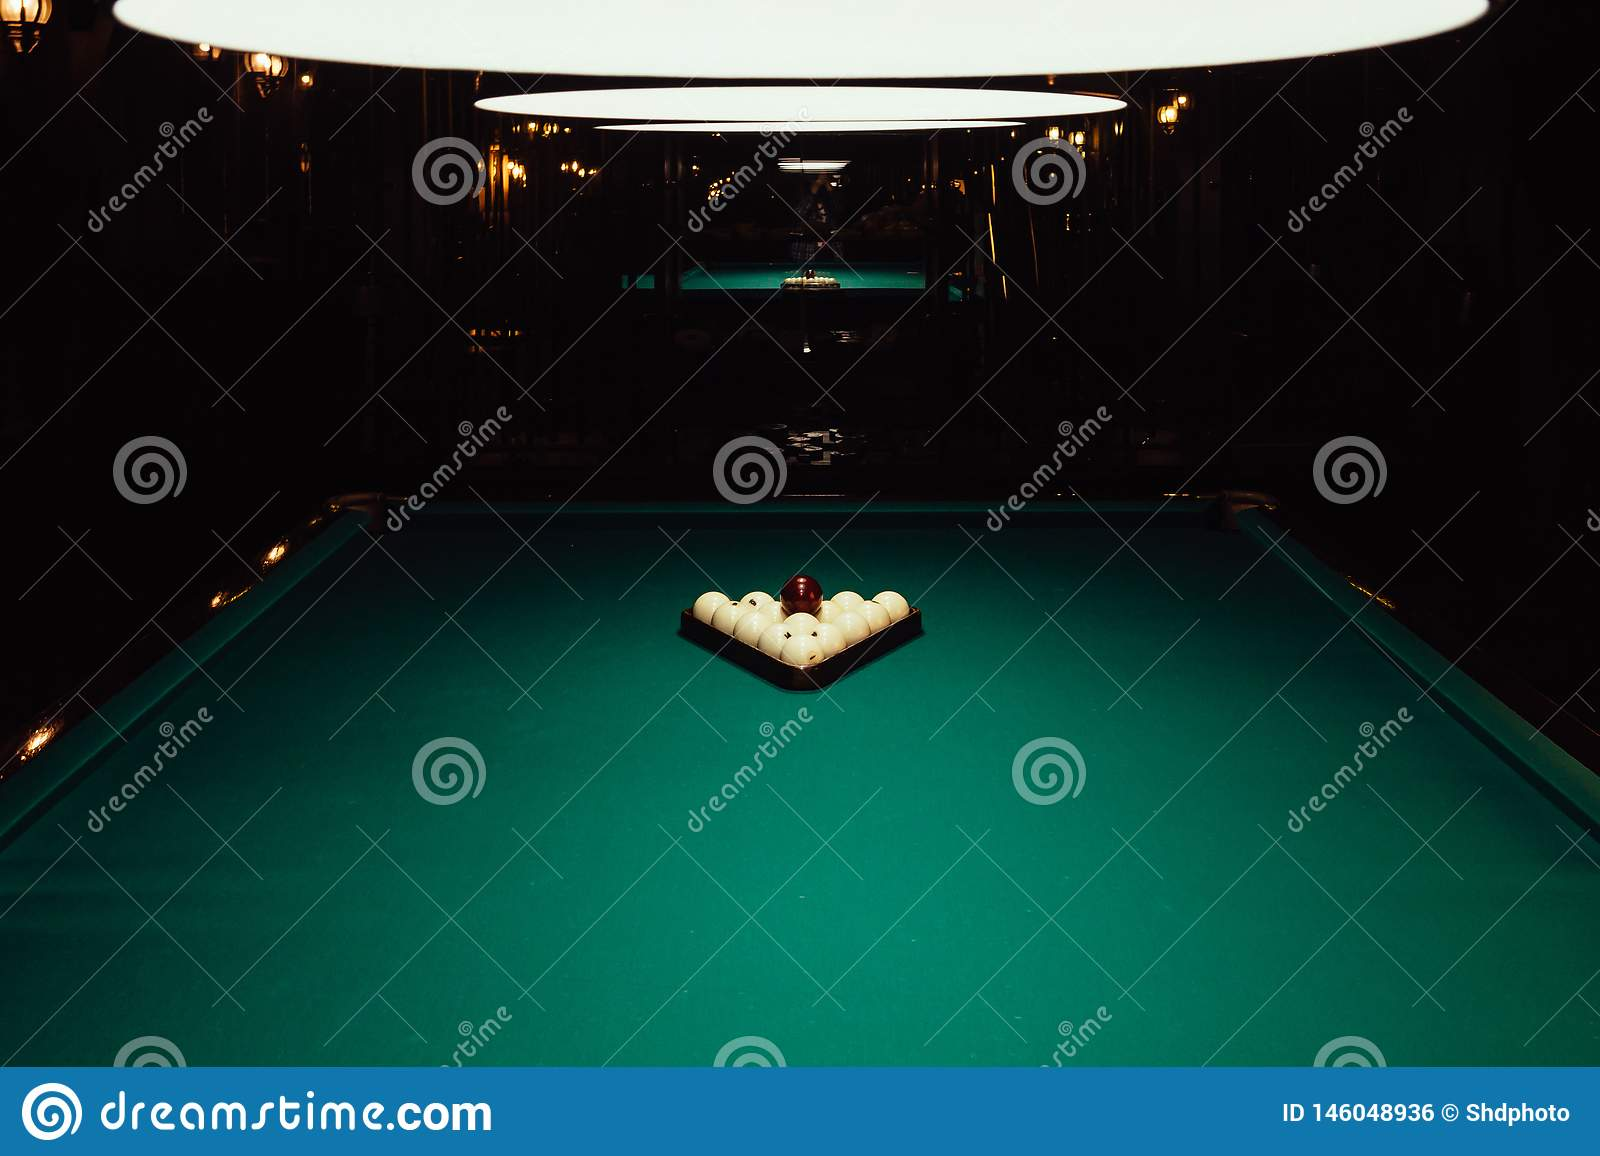 Billiards table with white balls. Billards pool game